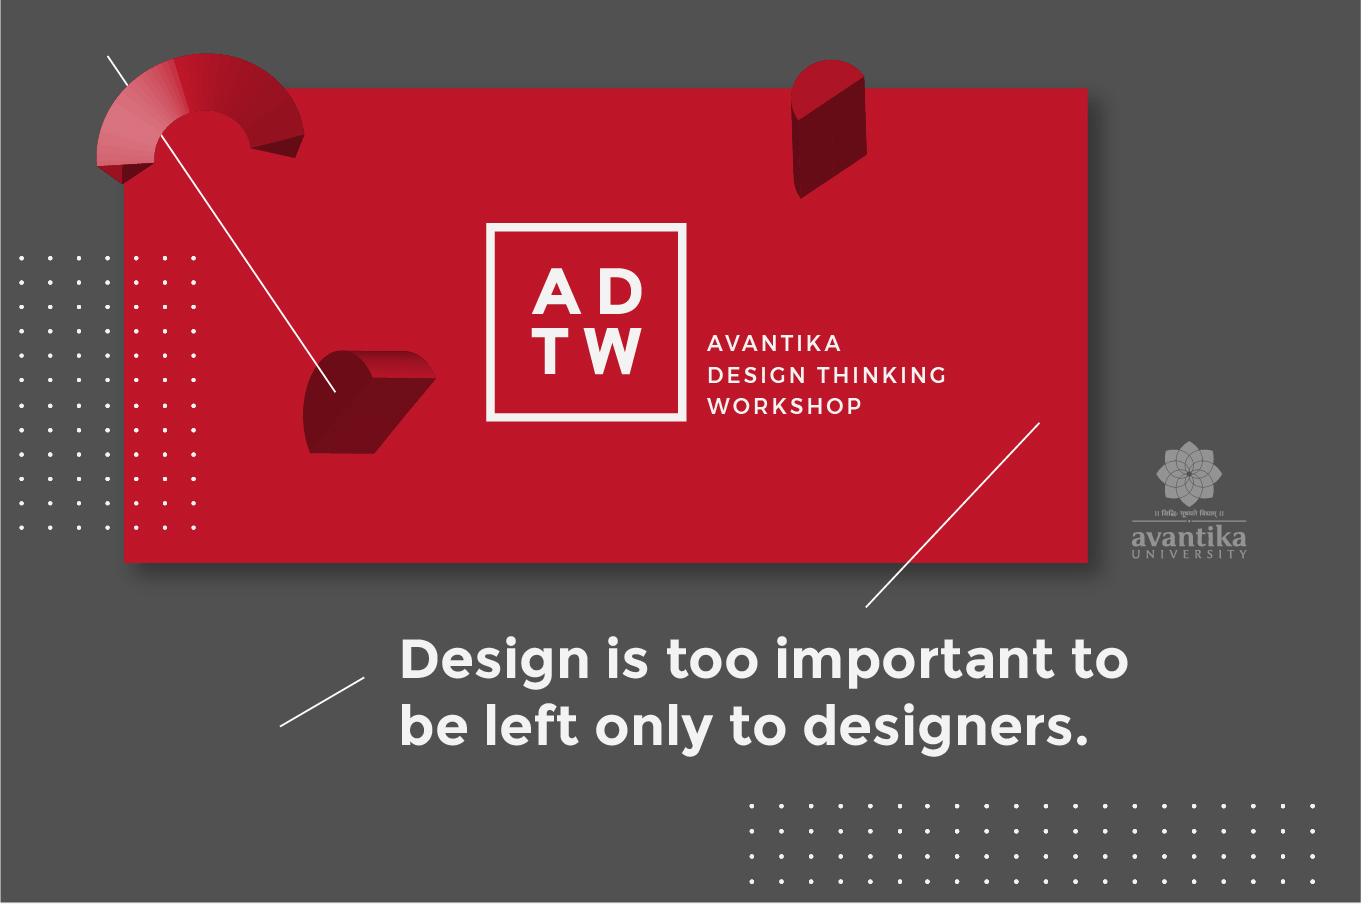 avantika design thinking workshop